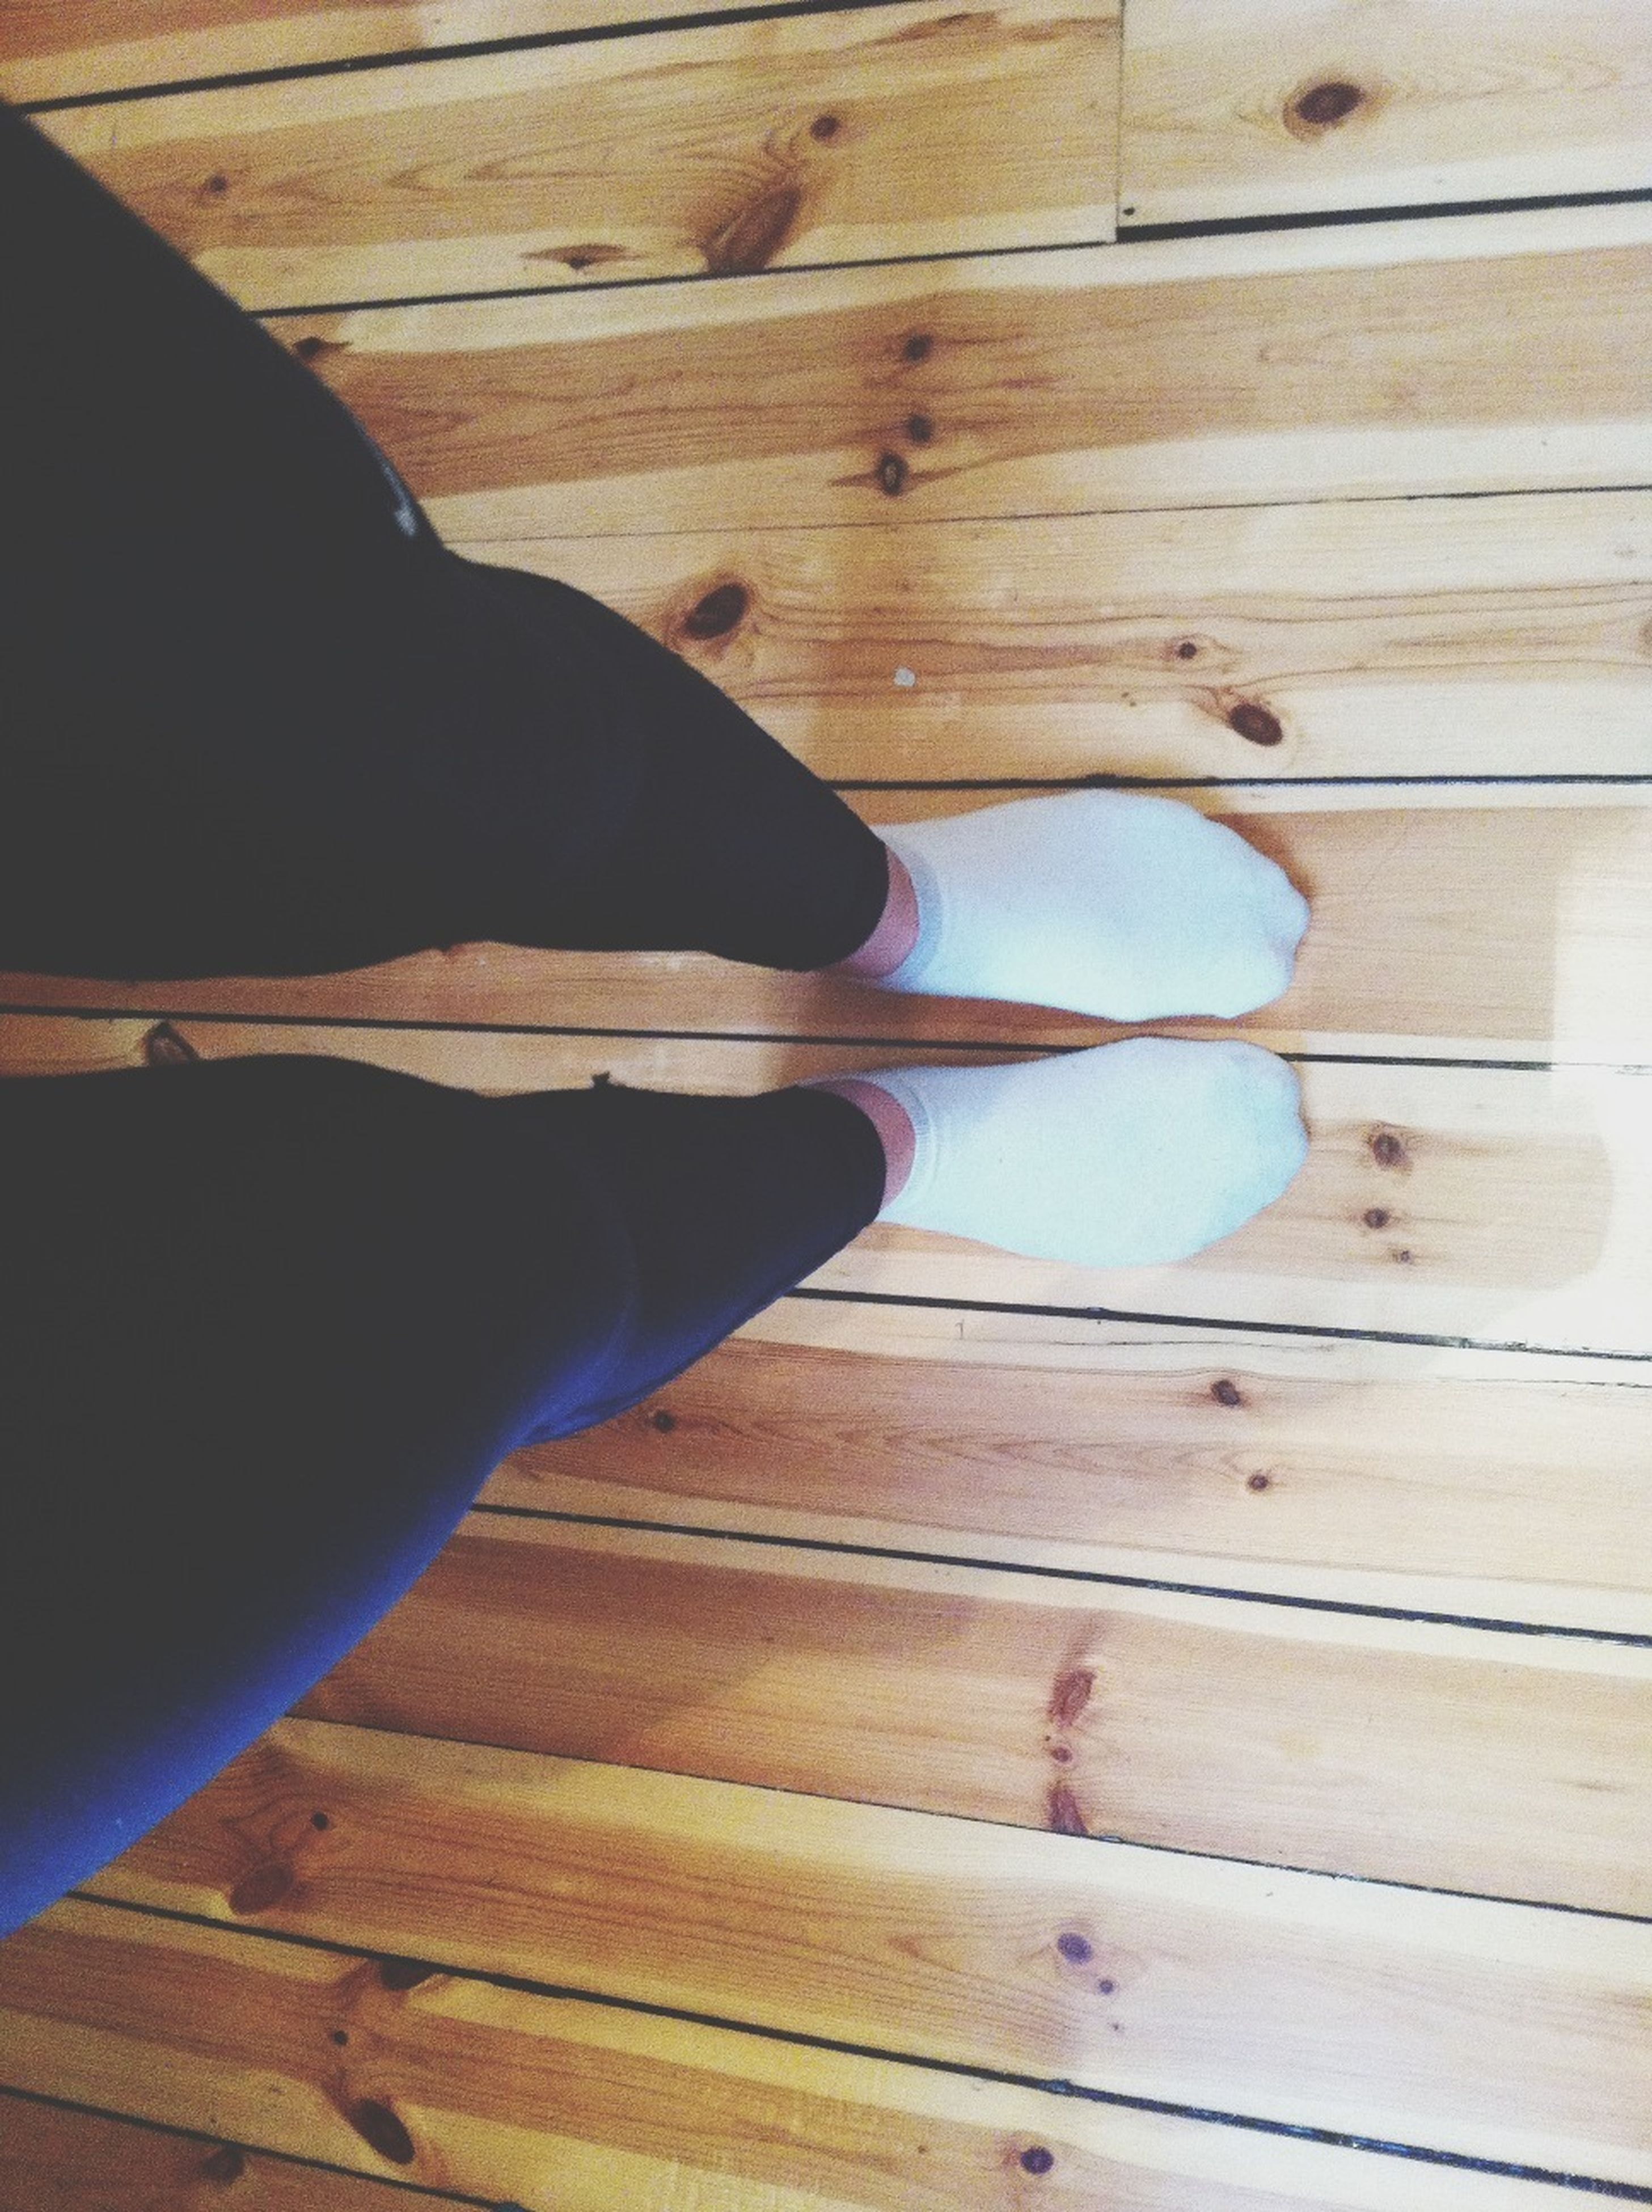 wood - material, indoors, low section, wooden, hardwood floor, person, part of, high angle view, plank, unrecognizable person, wood, personal perspective, shoe, close-up, human foot, men, shadow